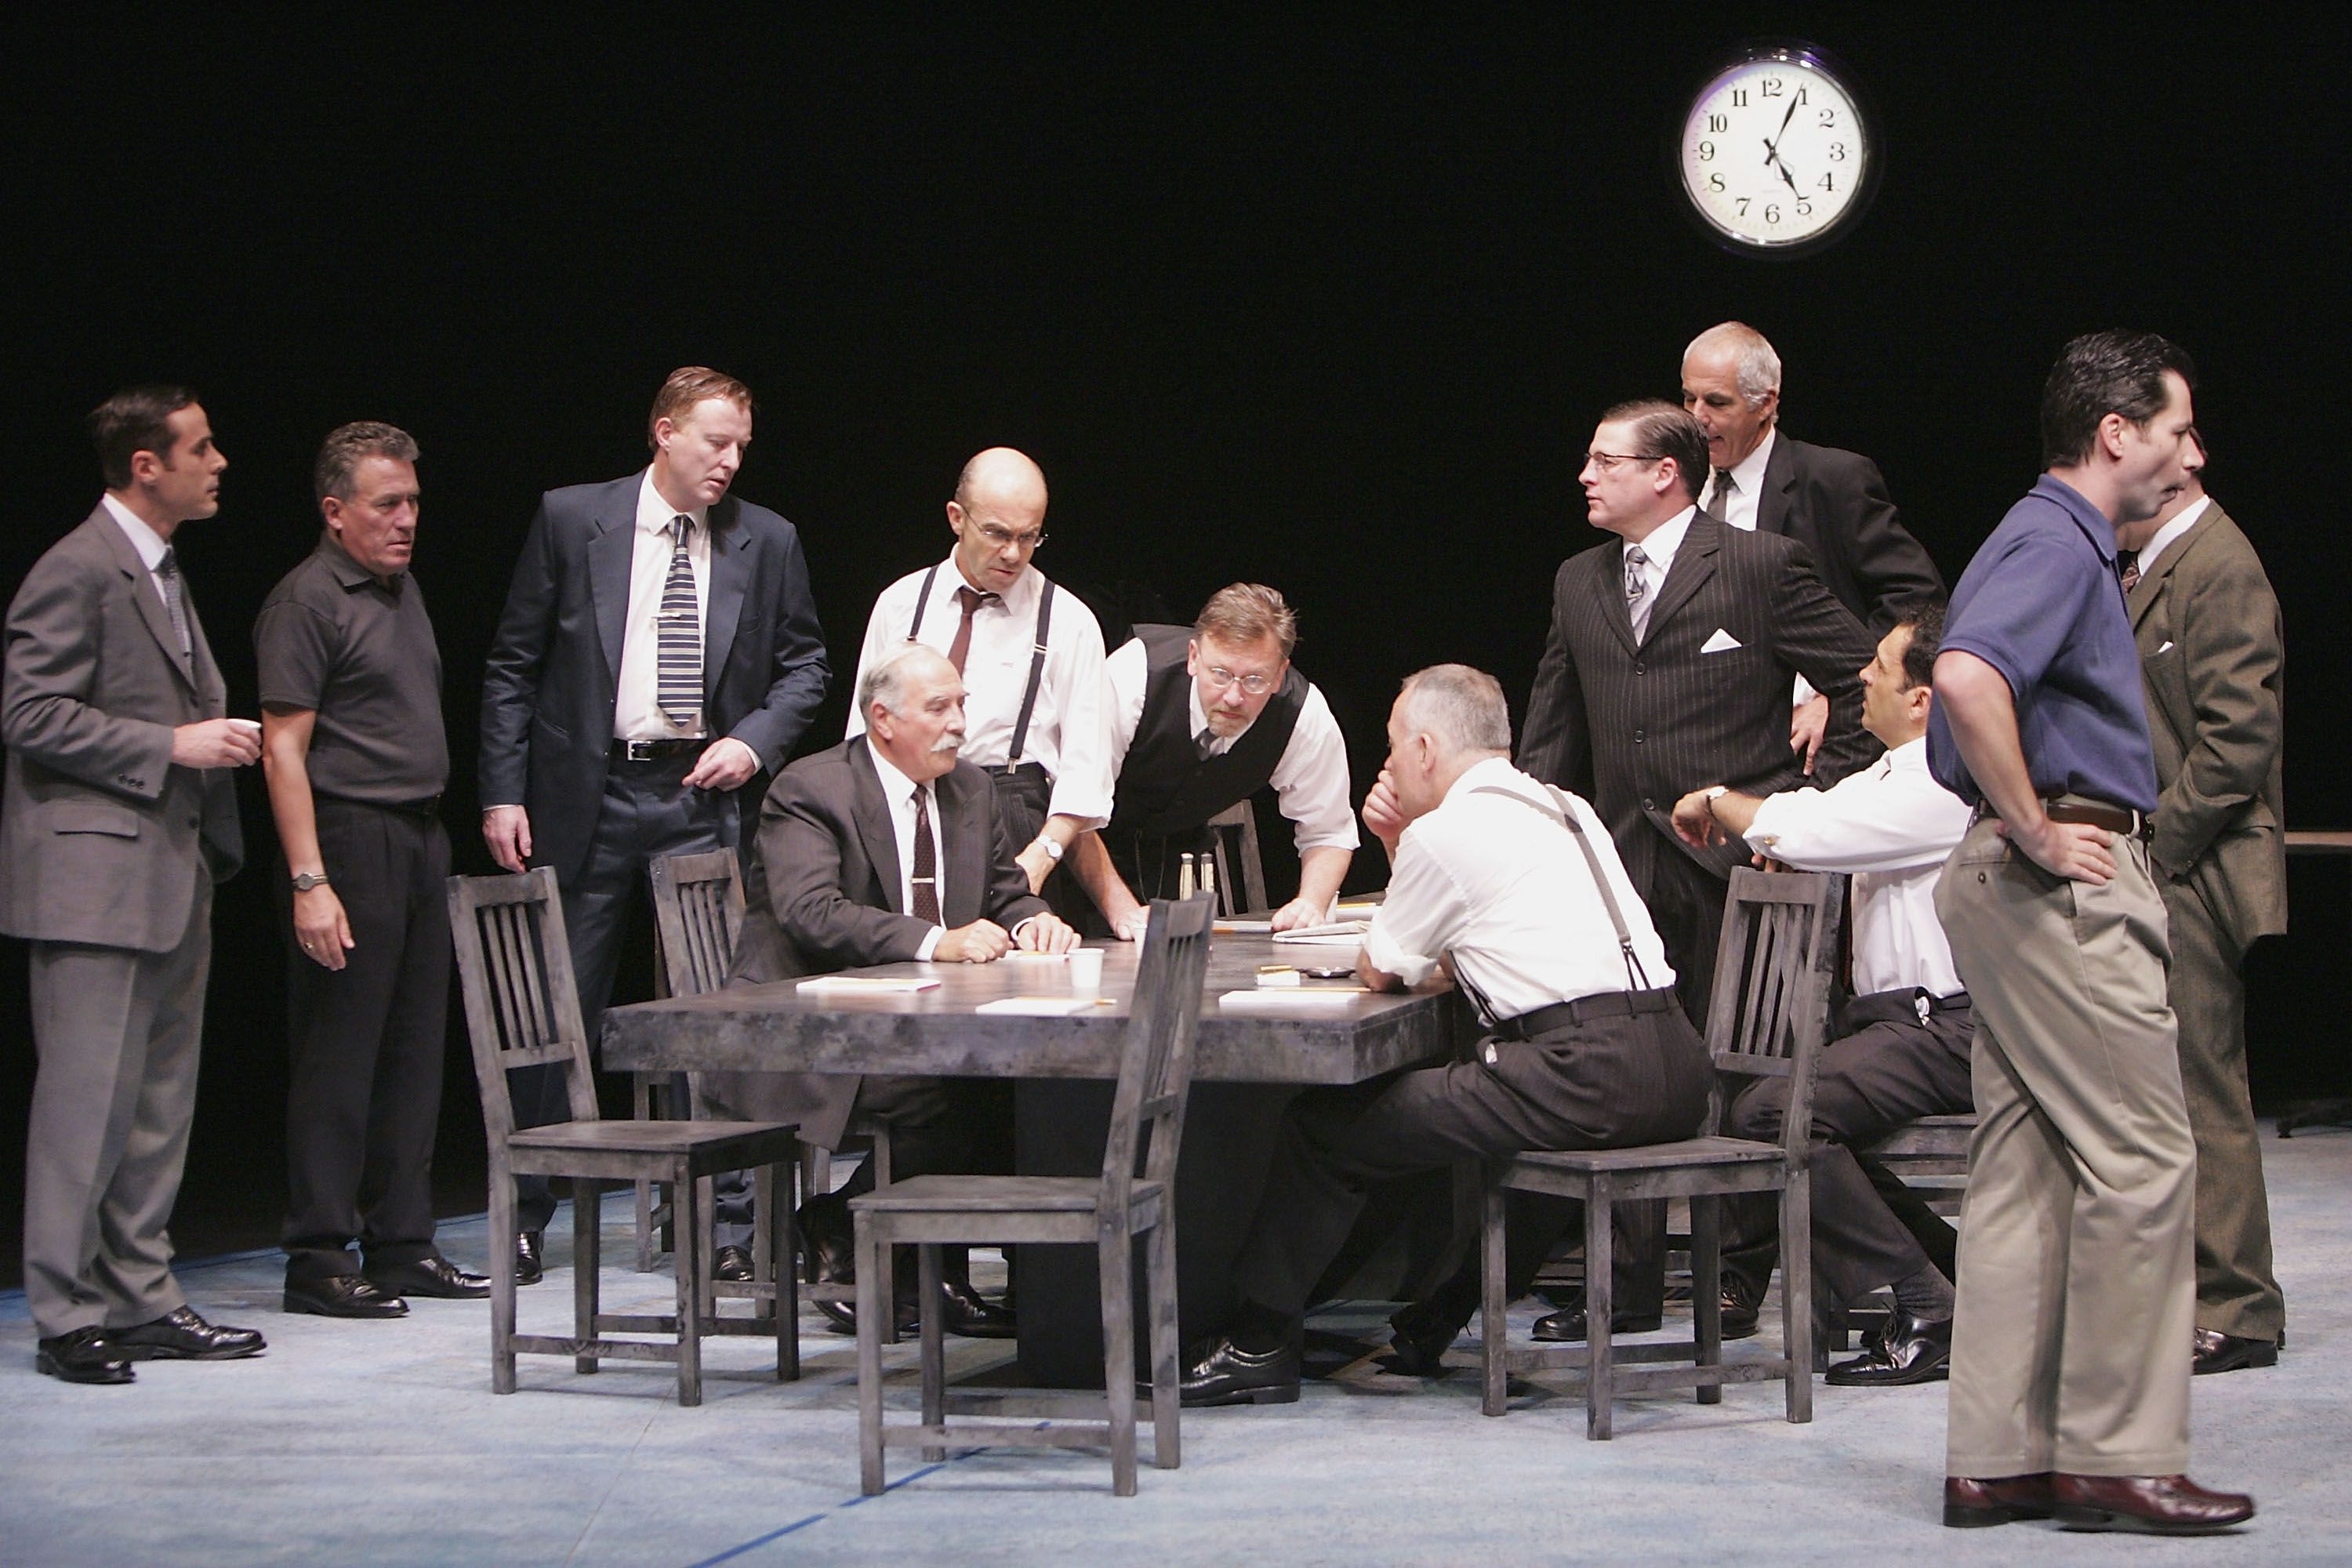 Twelve Angry Men Meet The Characters Of The Drama